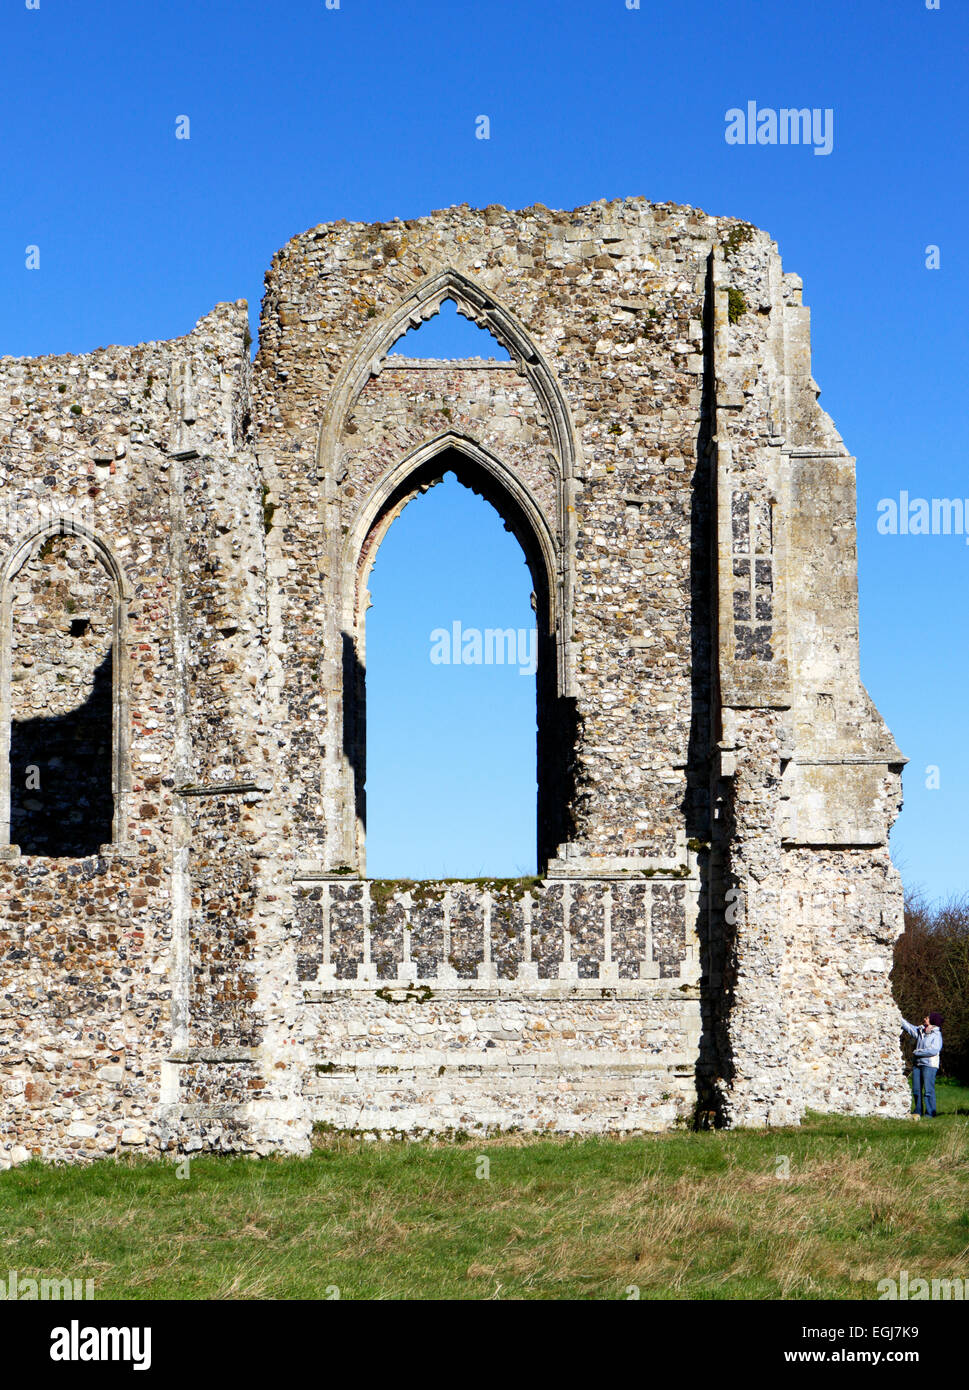 A detailed section of part of the ruins of Leiston Abbey, Suffolk, England, United Kingdom. - Stock Image